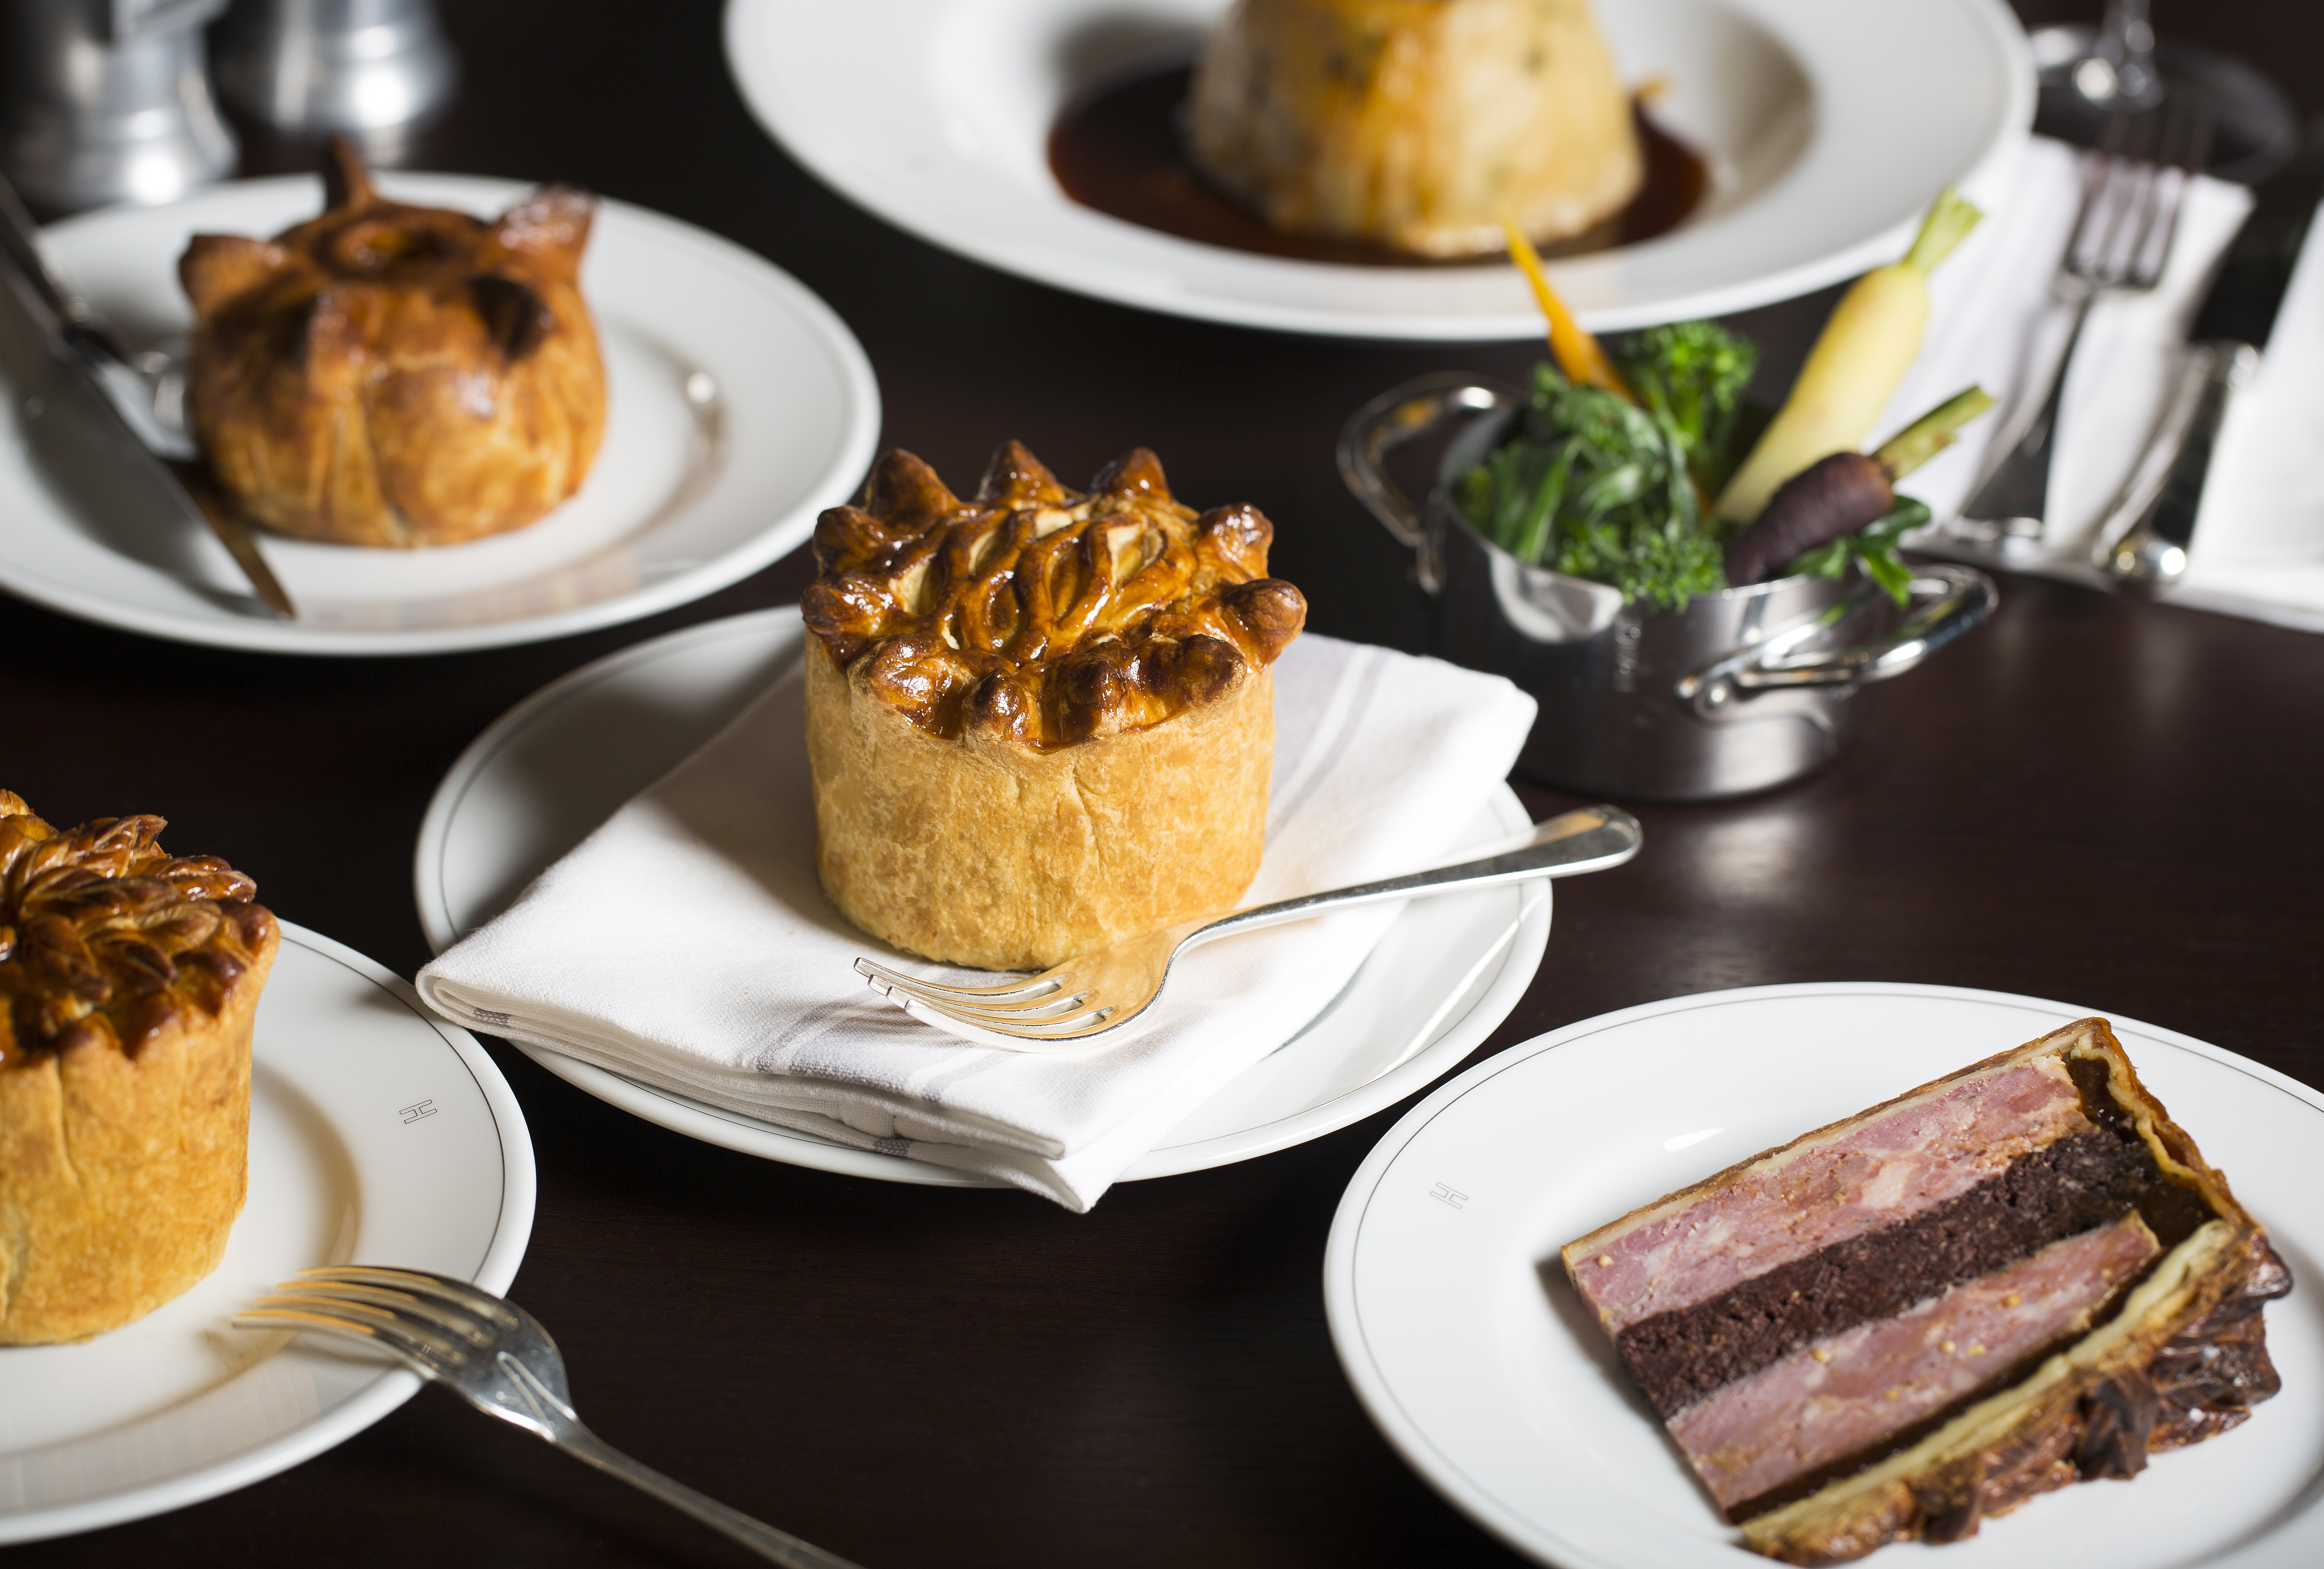 The First Timer's Guide To Eating In London - London - The